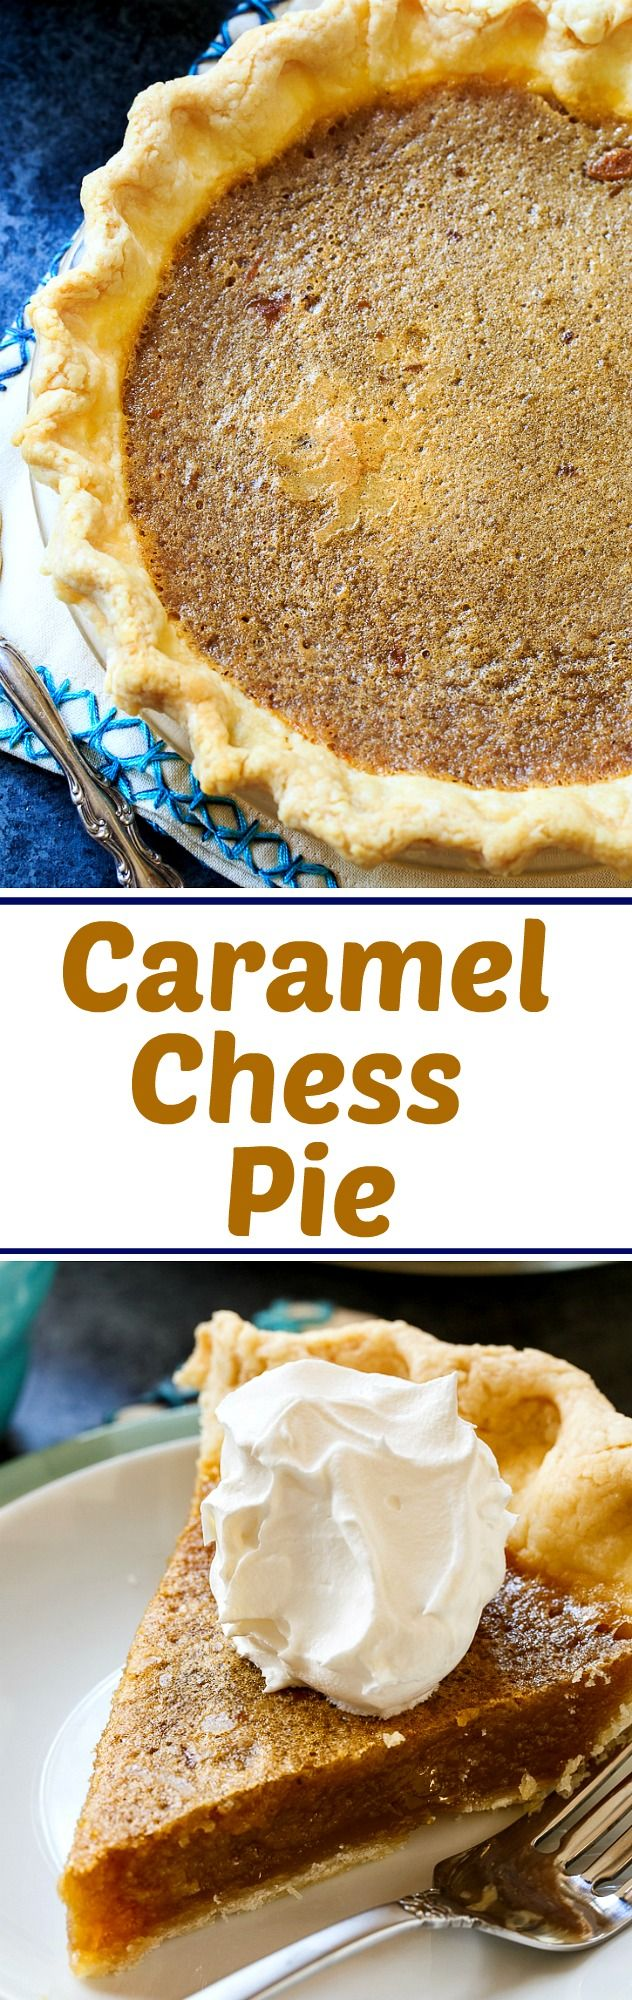 Caramel Chess pie is a traditional chess pie with a caramel flavor. Great for Thanksgiving.